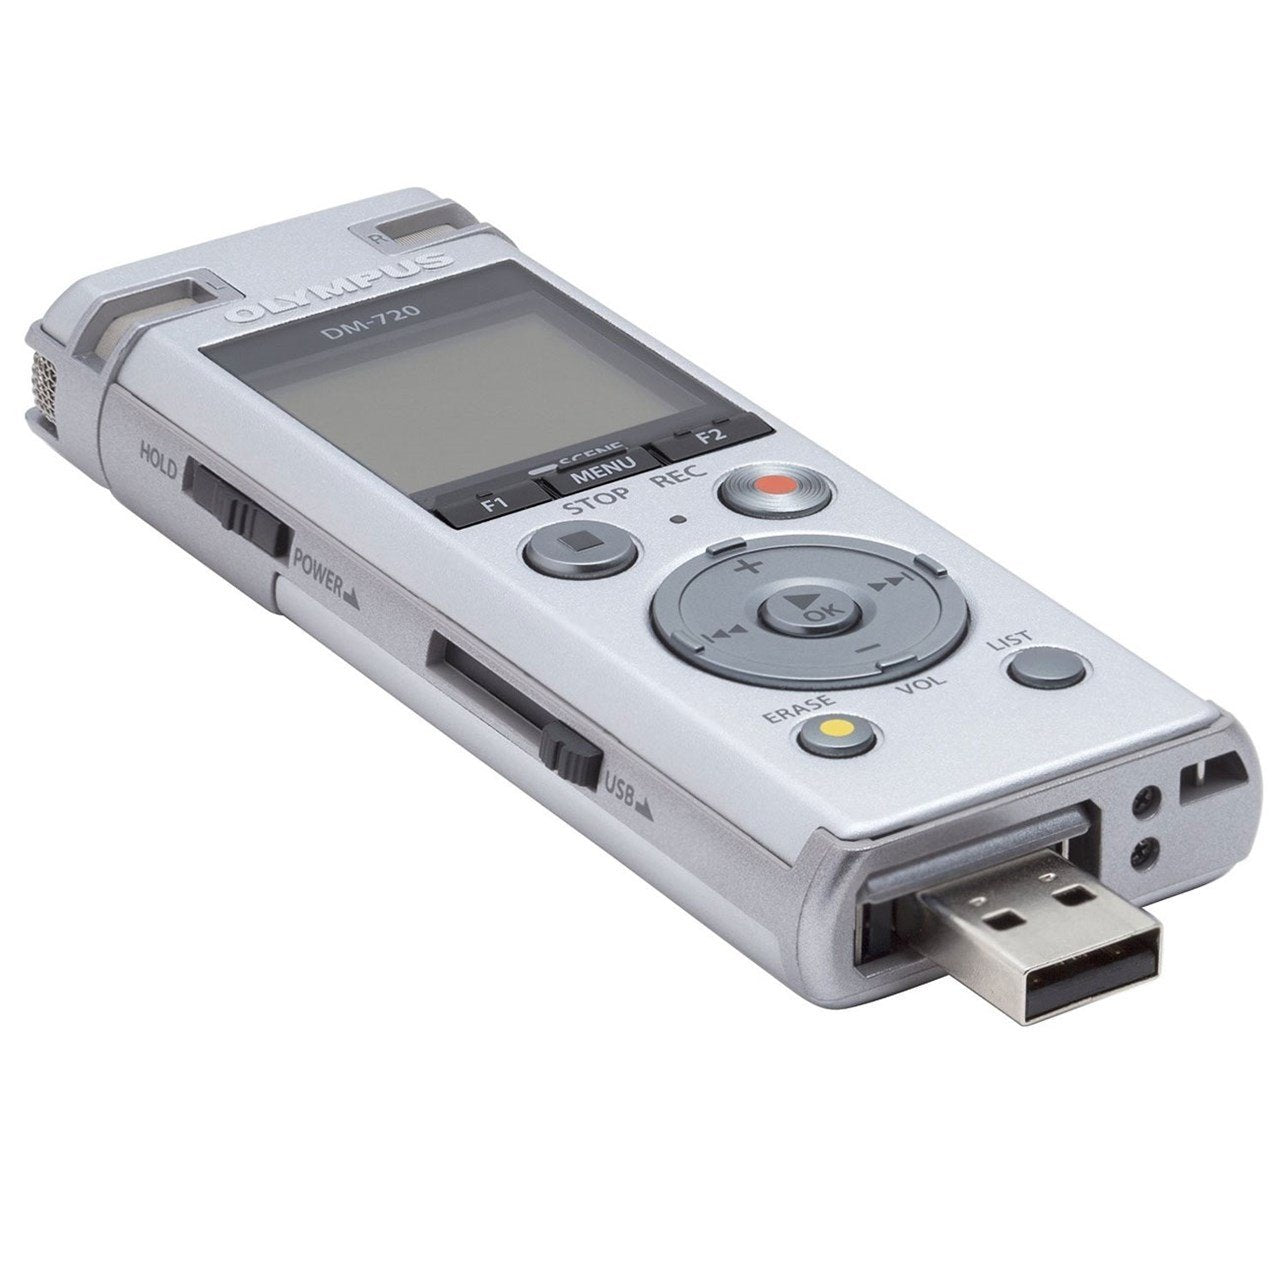 DM720 voice recorder